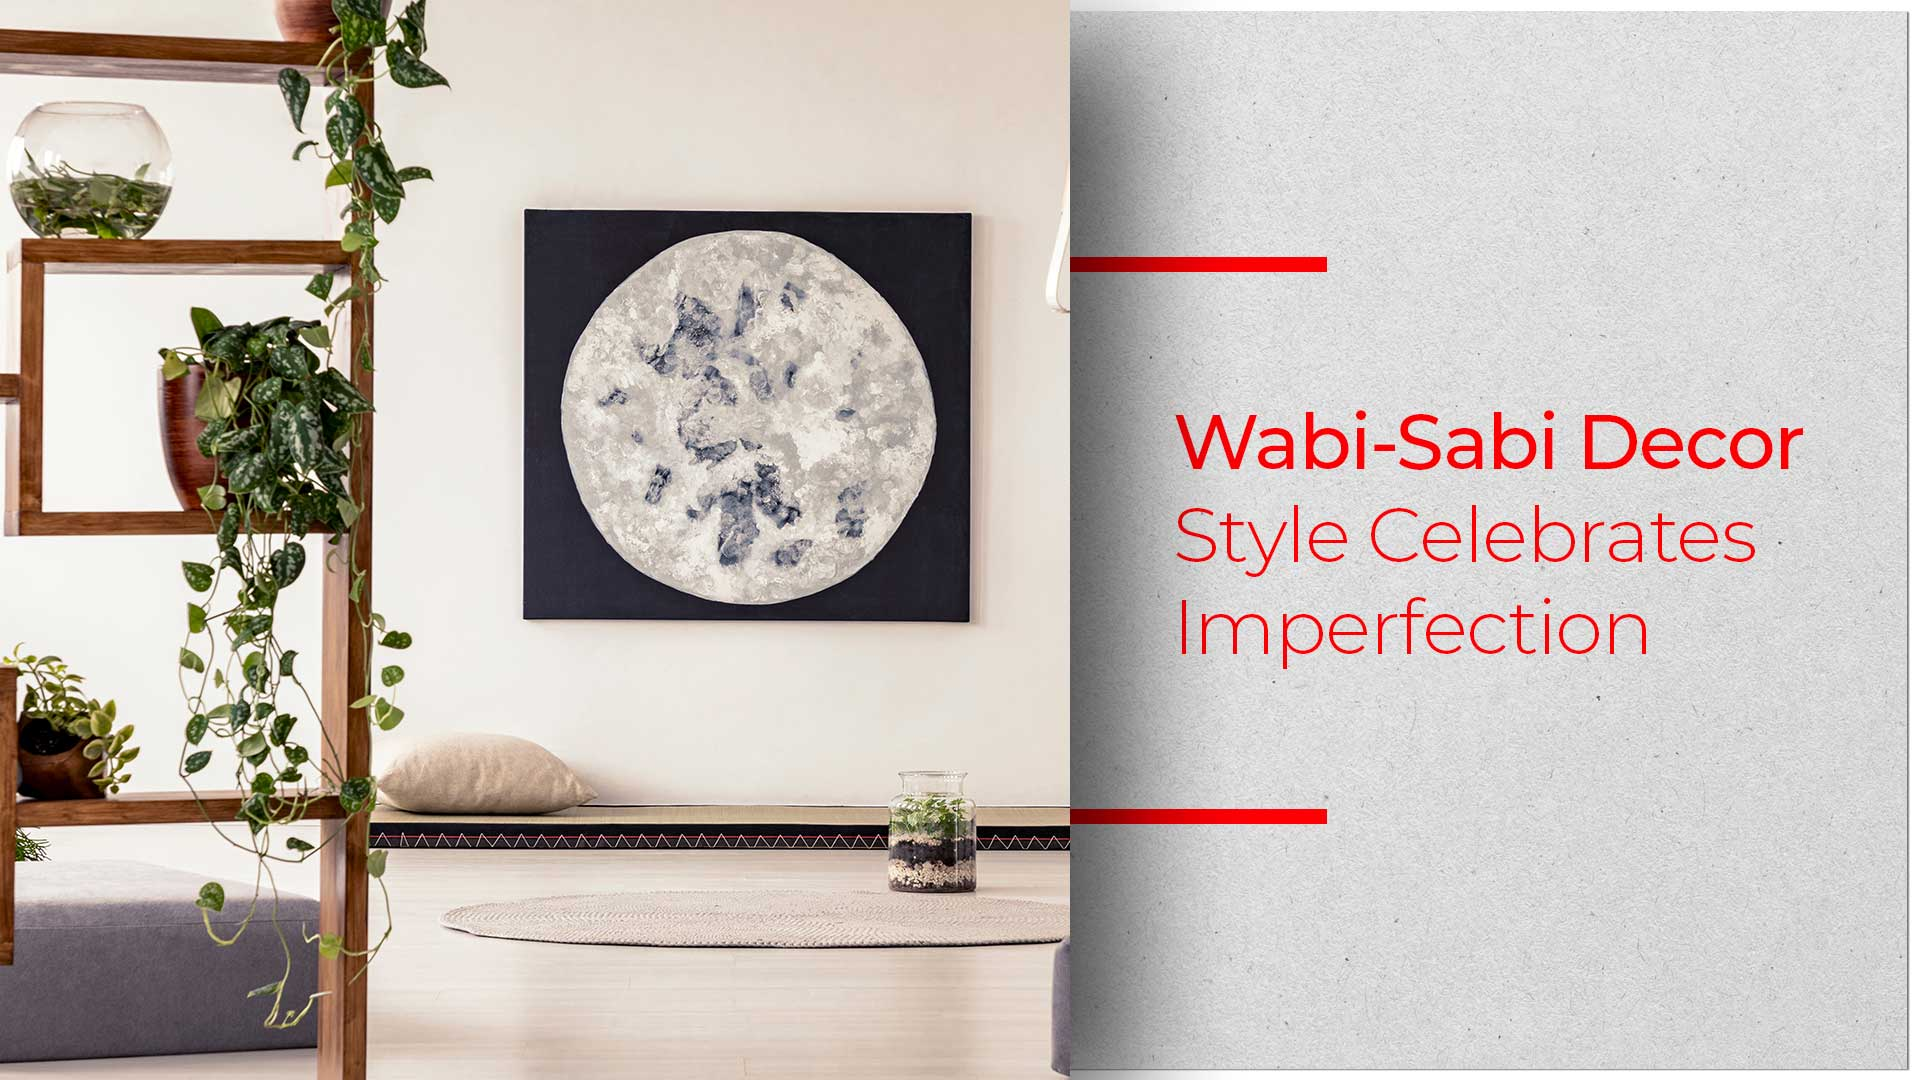 5 Things You Can Incorporate For A Wabi-Sabi Interior Décor